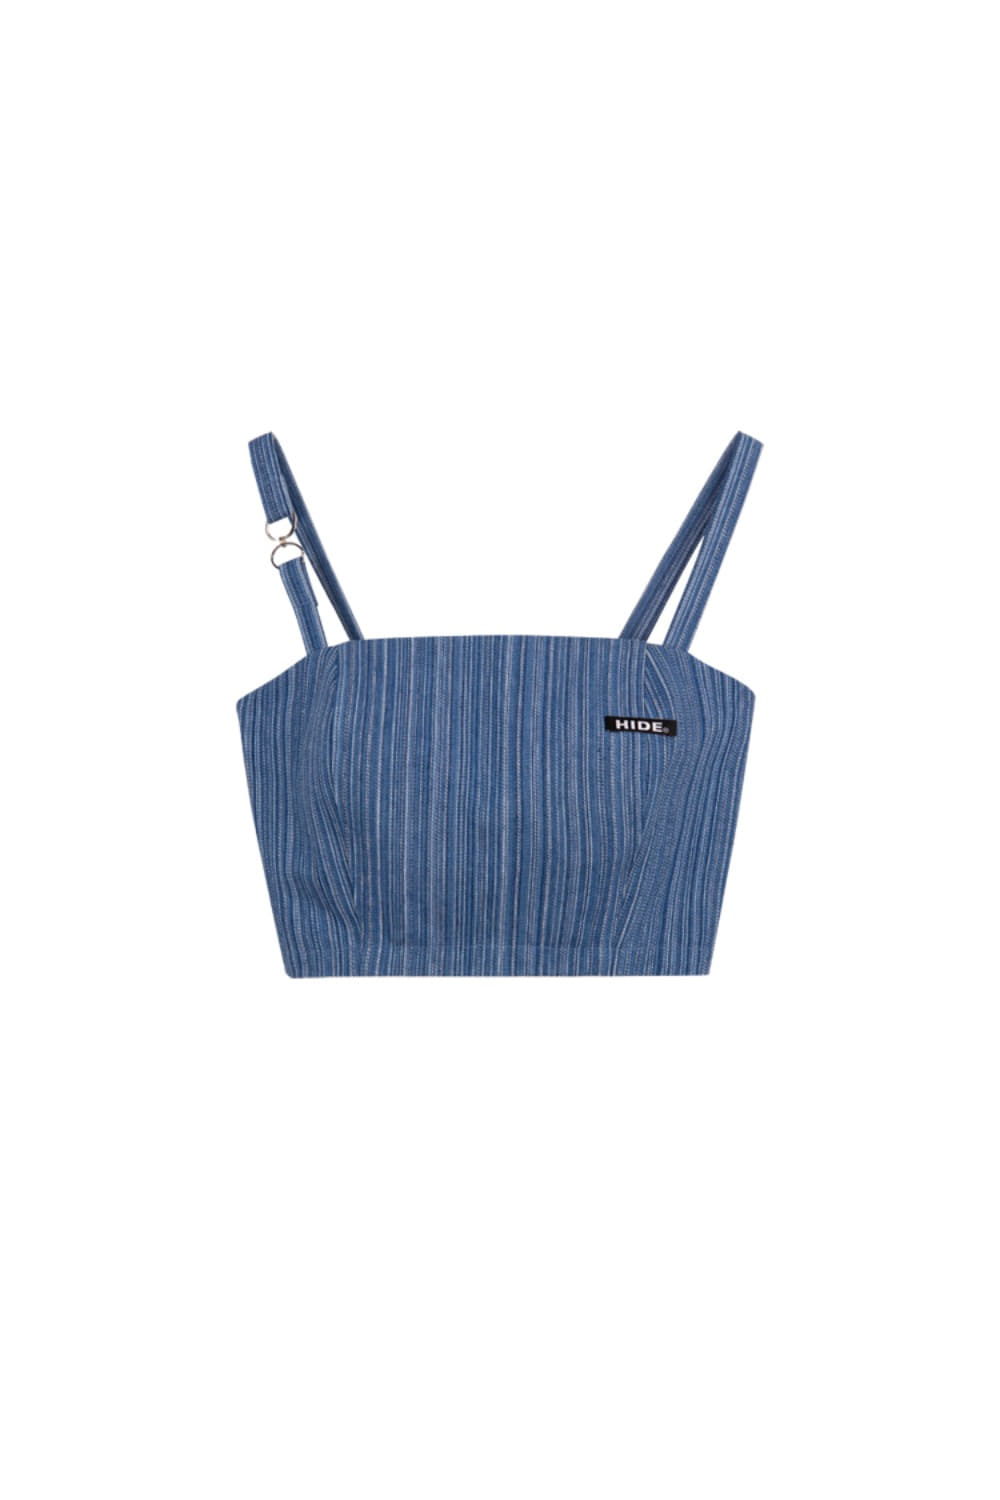 HIDE Stripe Denim Sleeveless Top BLUE